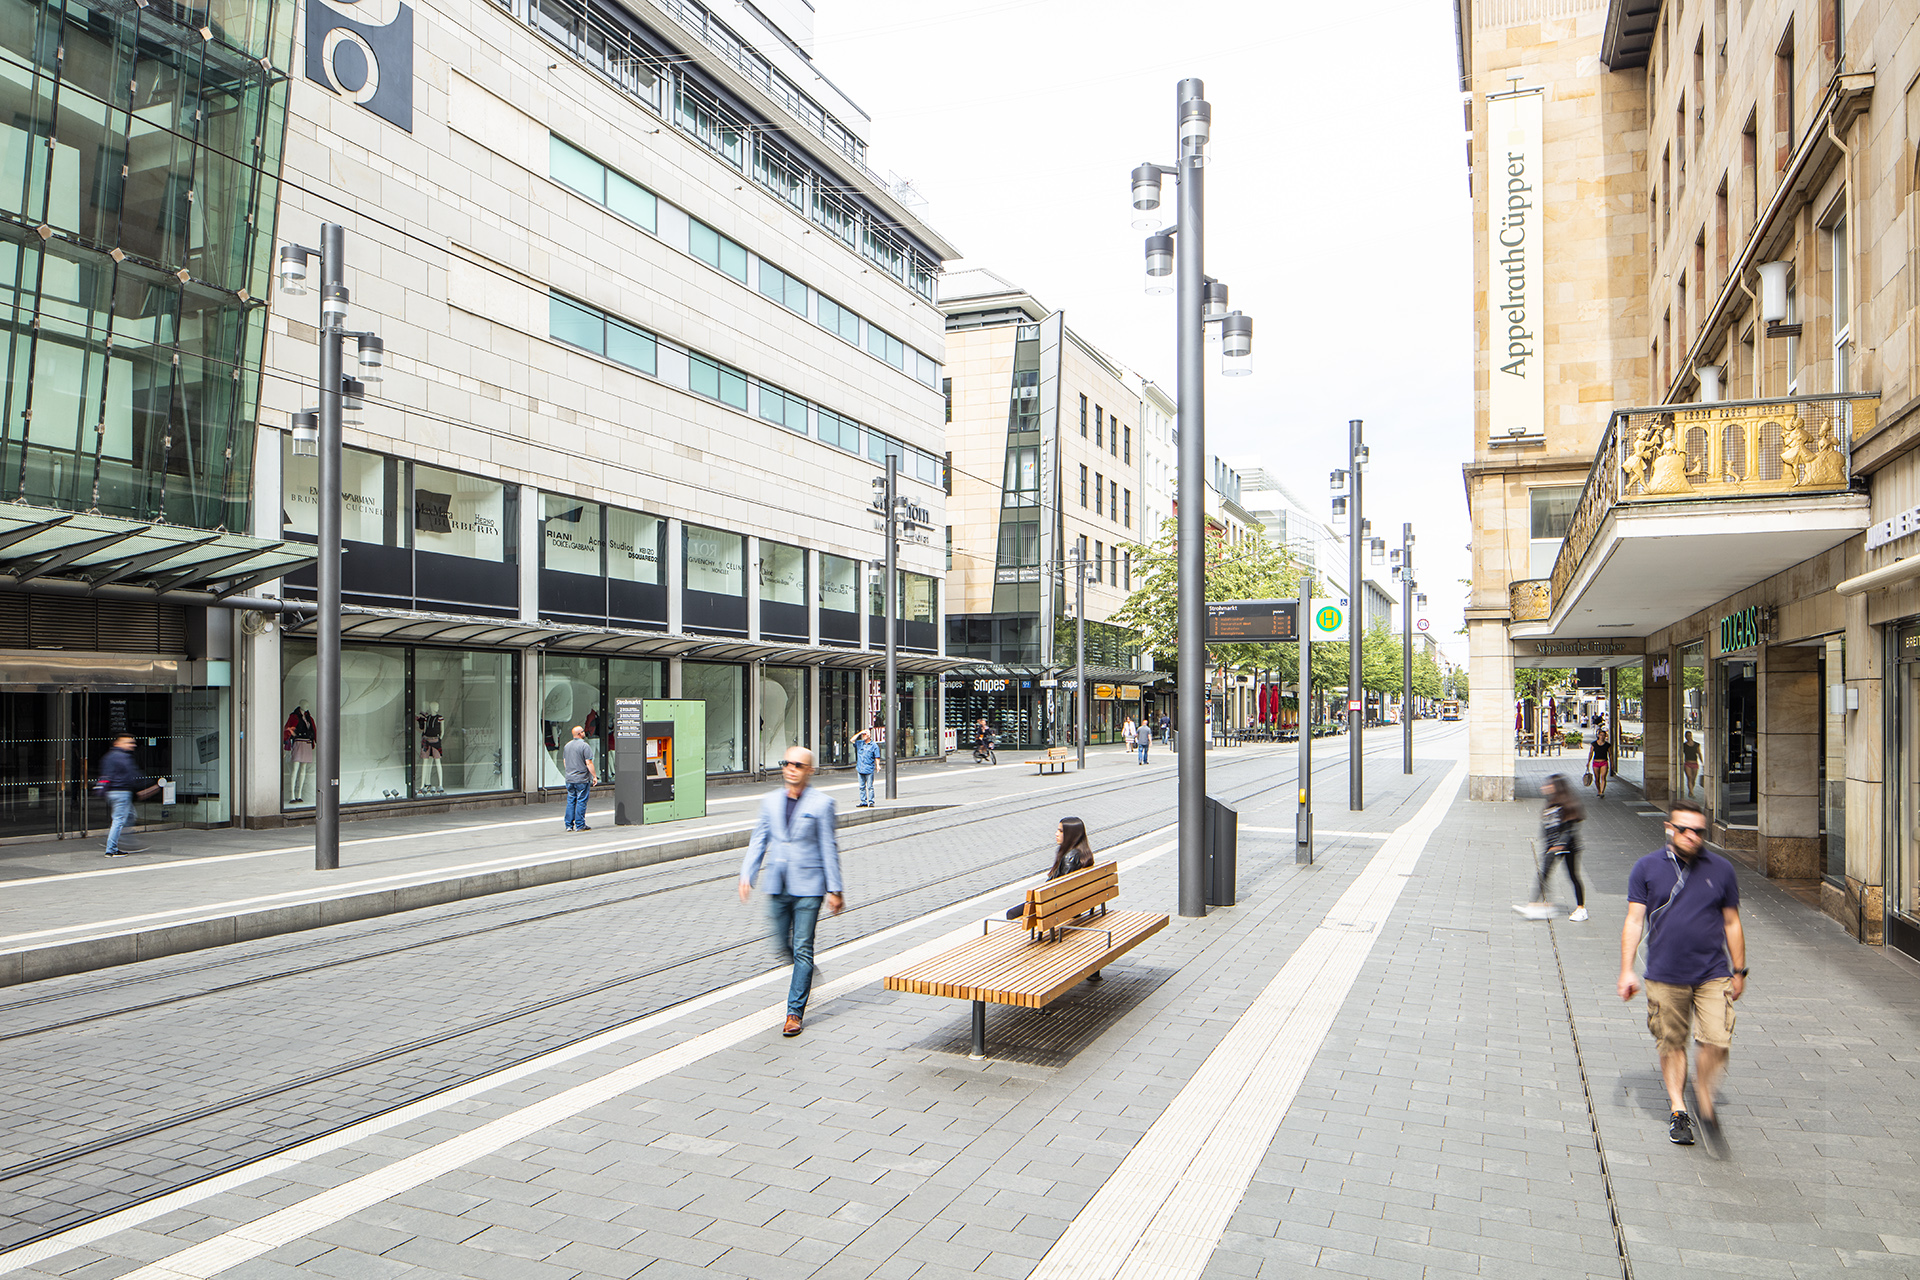 Urban street lights have transformed the Planken into a warm, welcoming landscape for shoppers